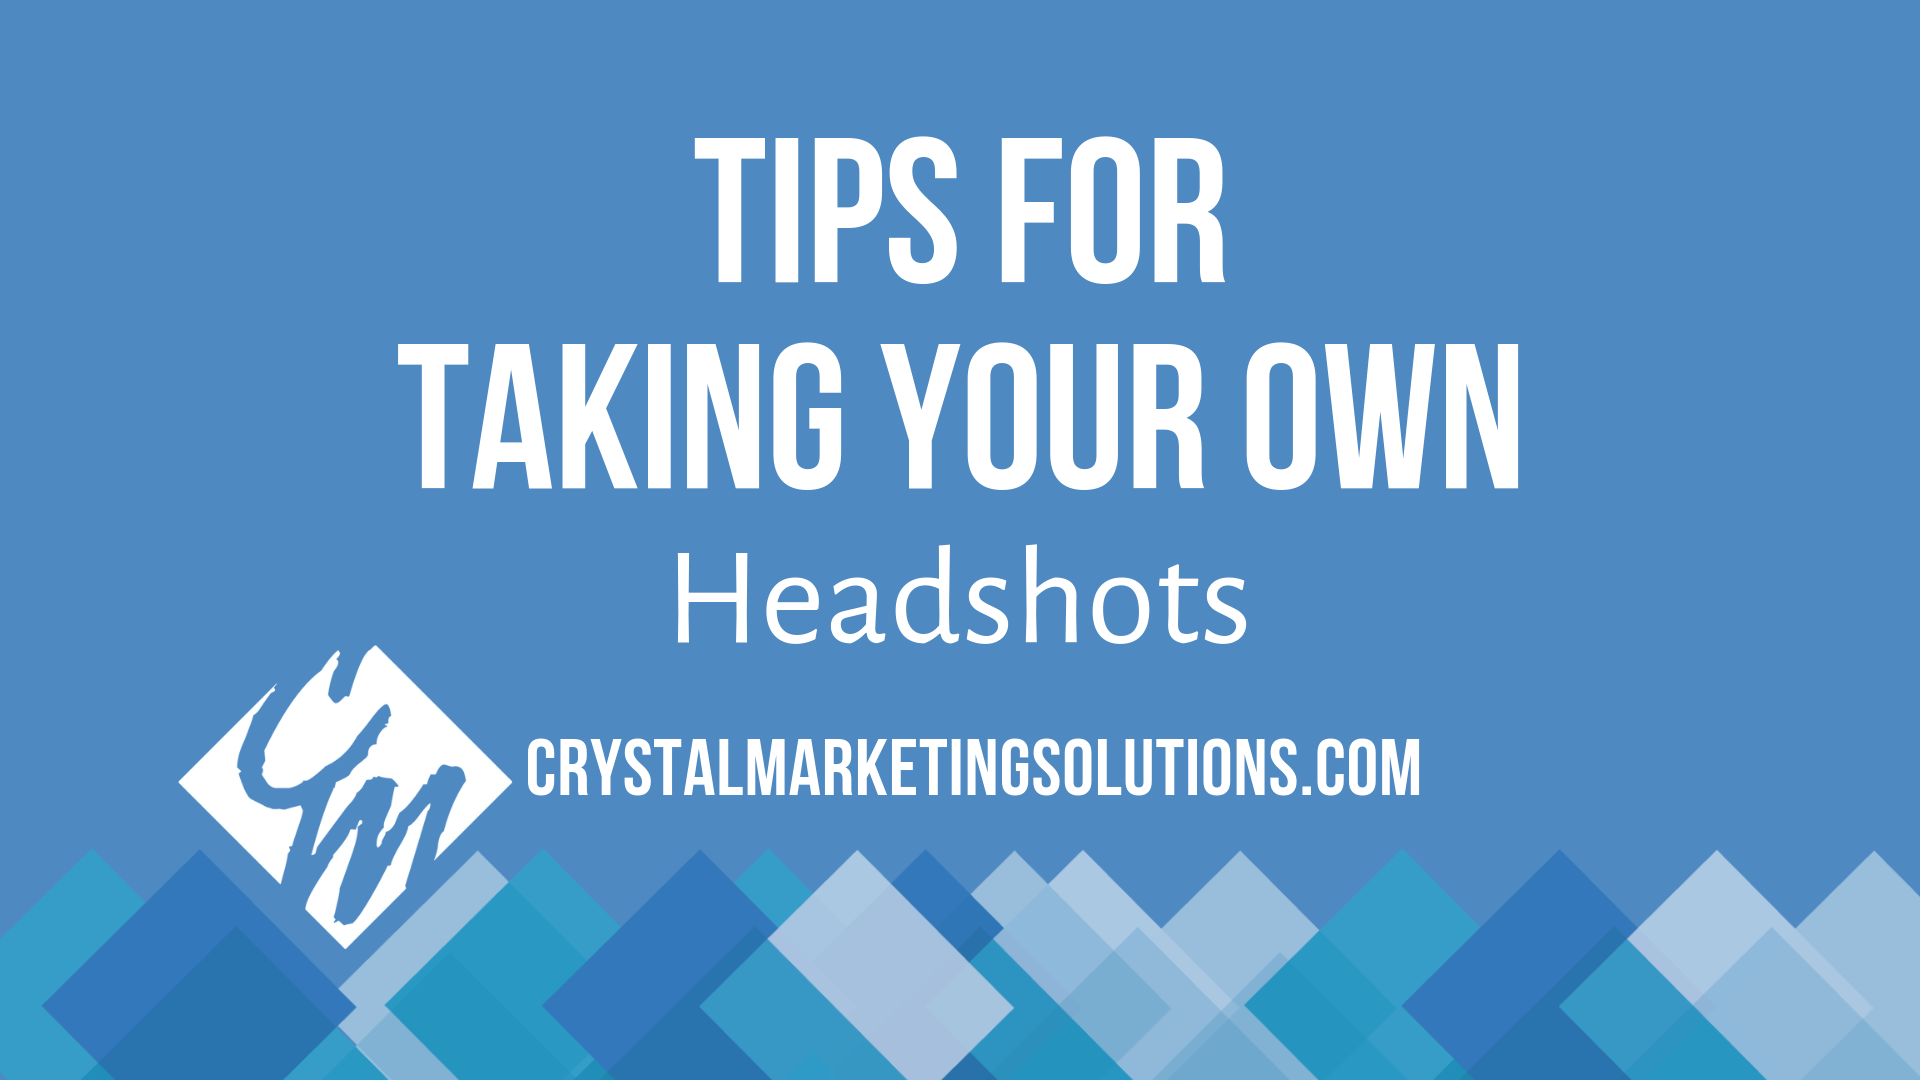 Tips for Taking Your Own Headshots